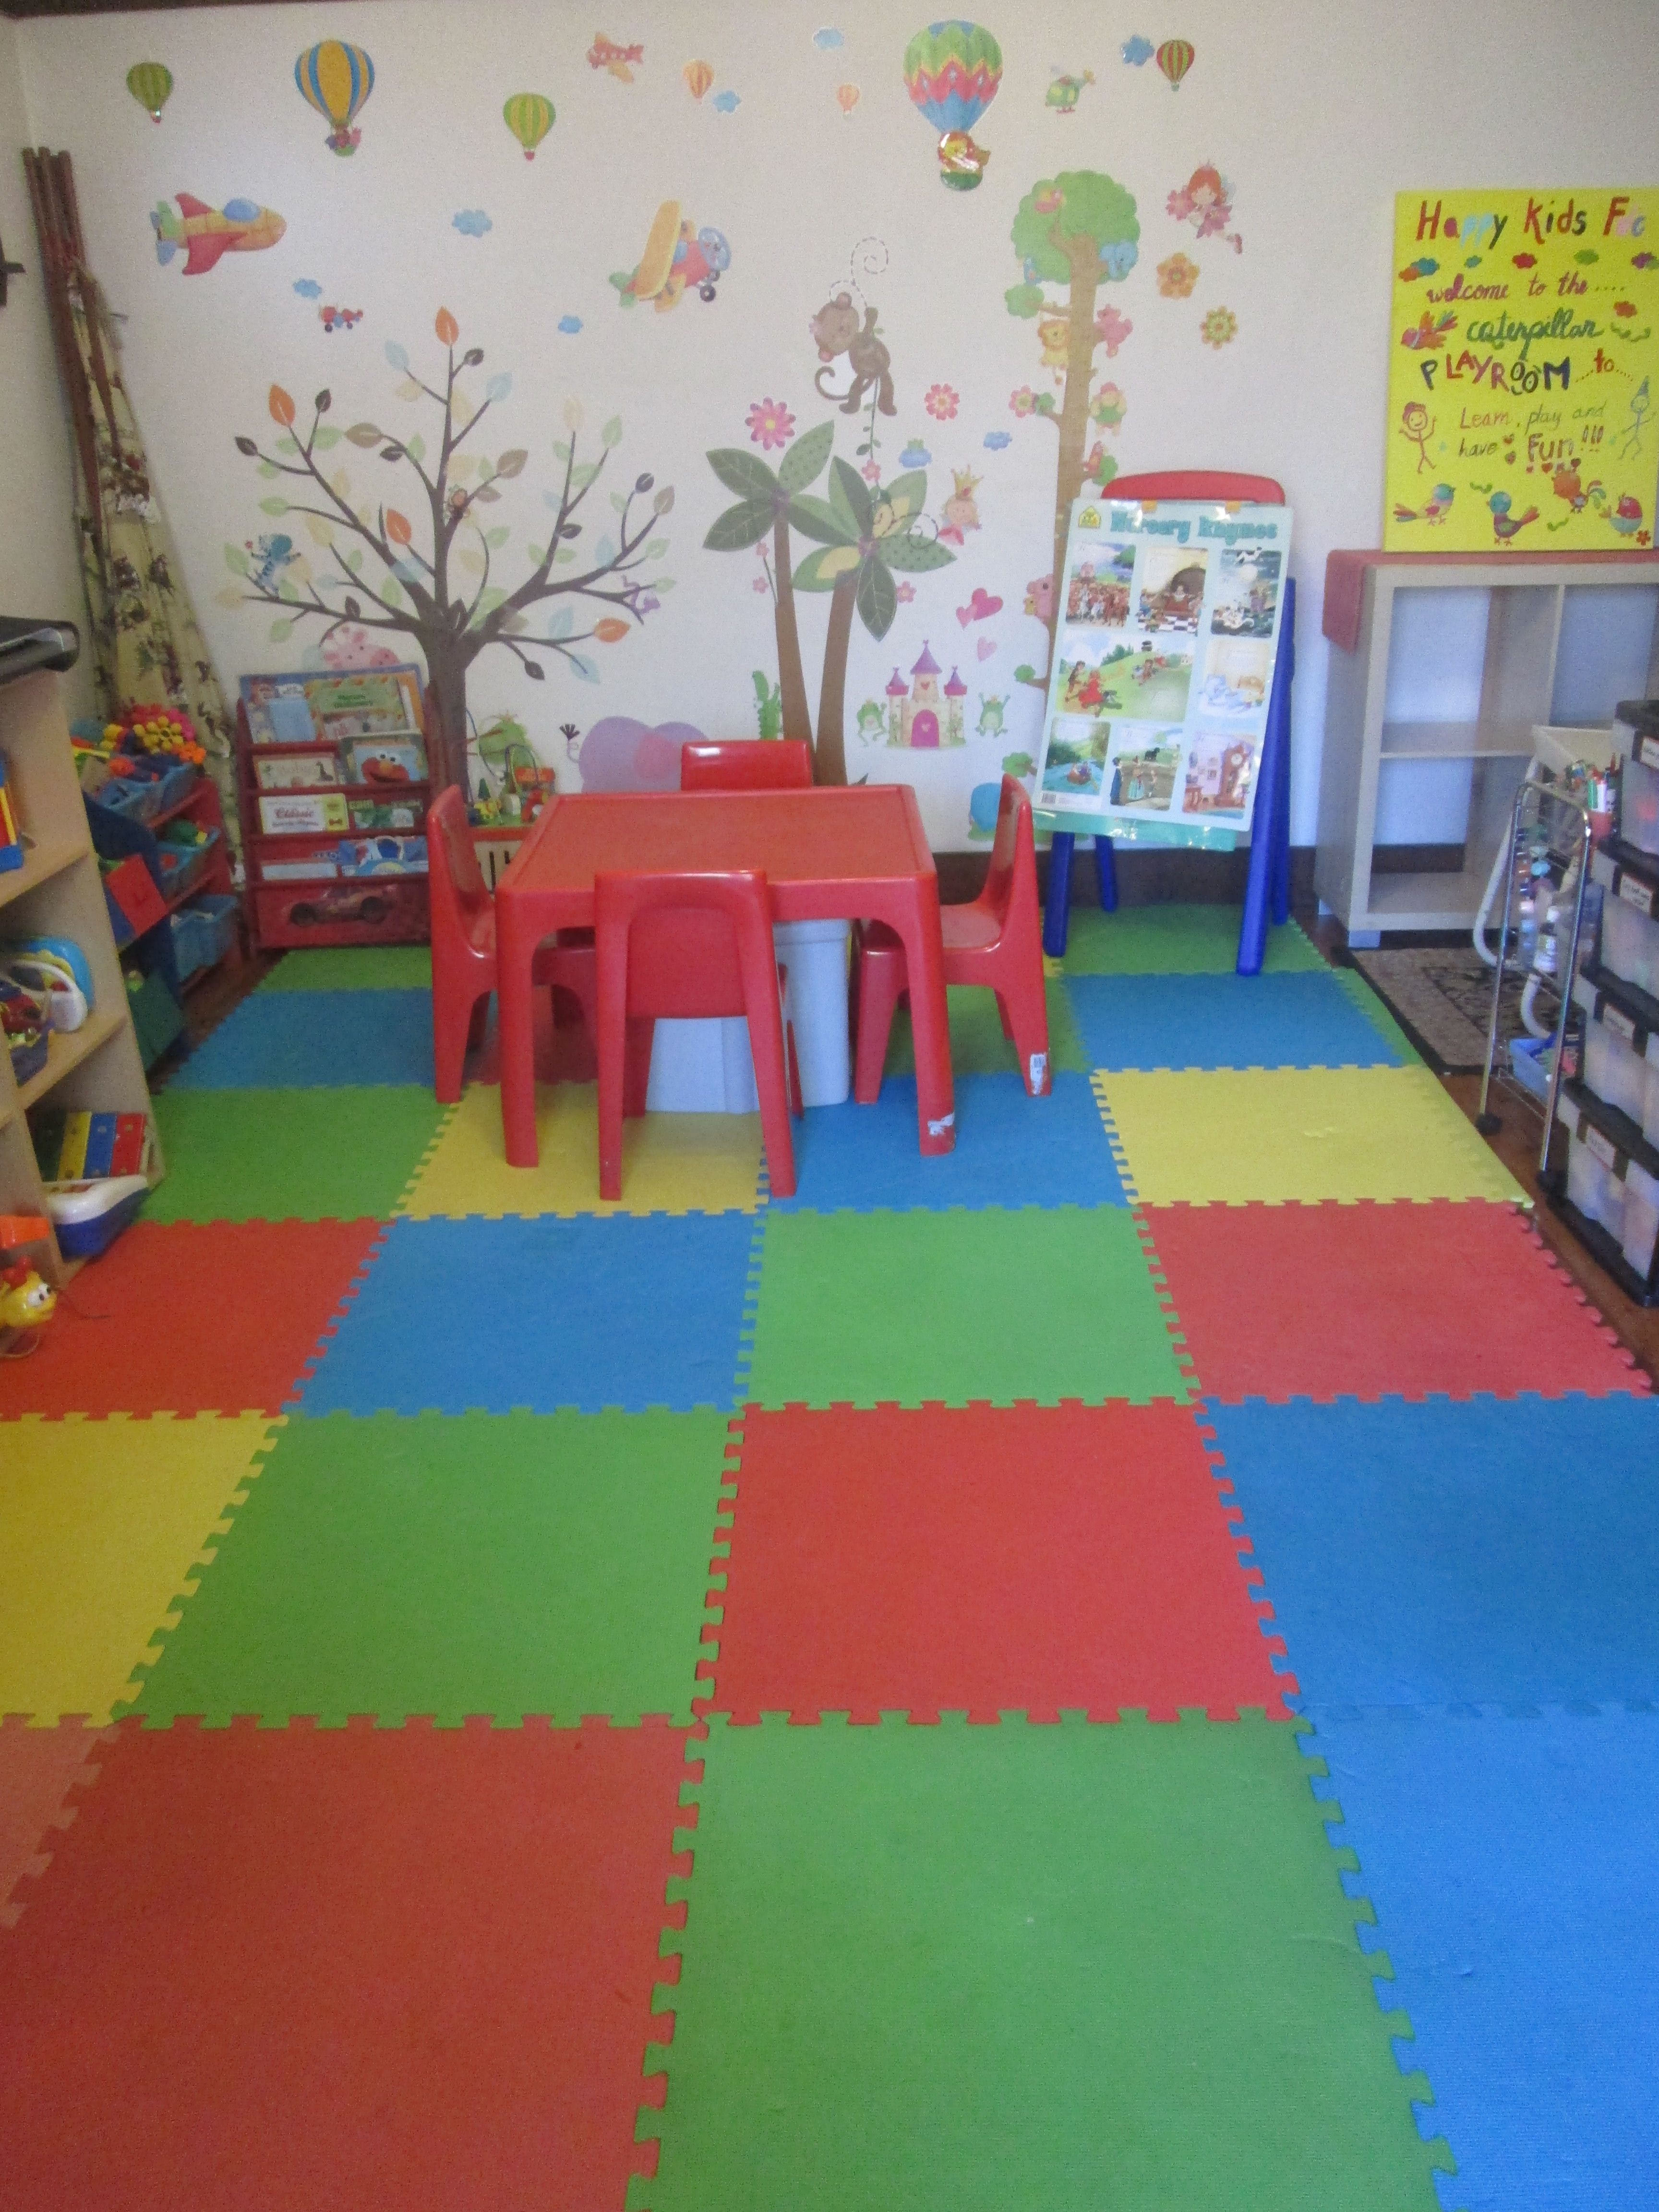 organised ideas to set up a play room for a family day care business